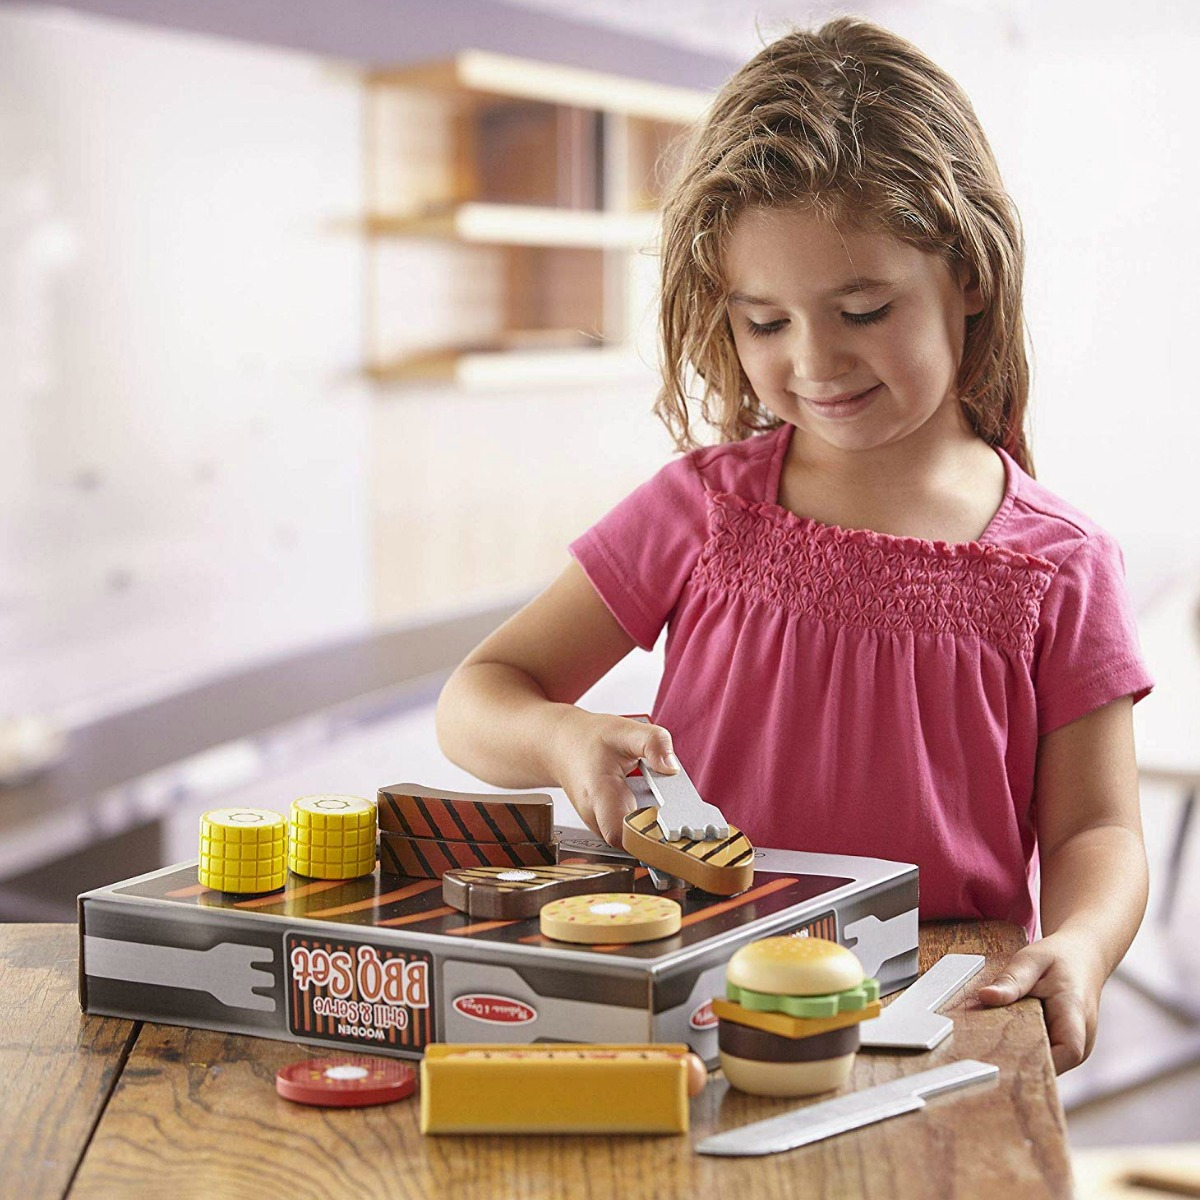 little girl playing with a Melissa & Doug BBQ set at a table